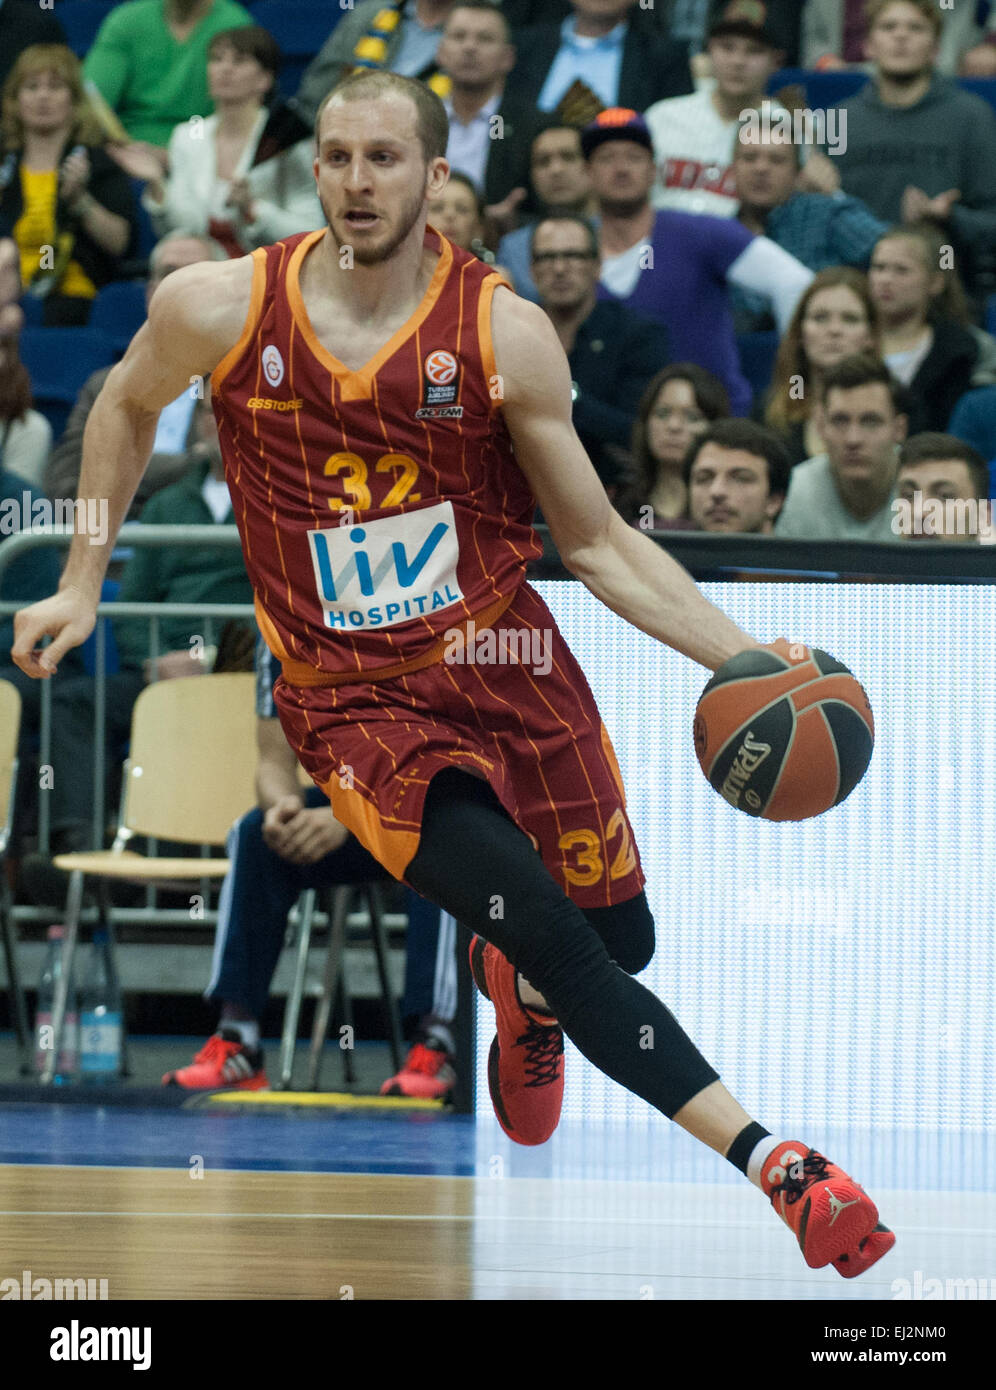 Galatasaray's Sinan Gueler in action during the Euroleague men's Group E match between ALBA Berlin and Galatasaray - Stock Image